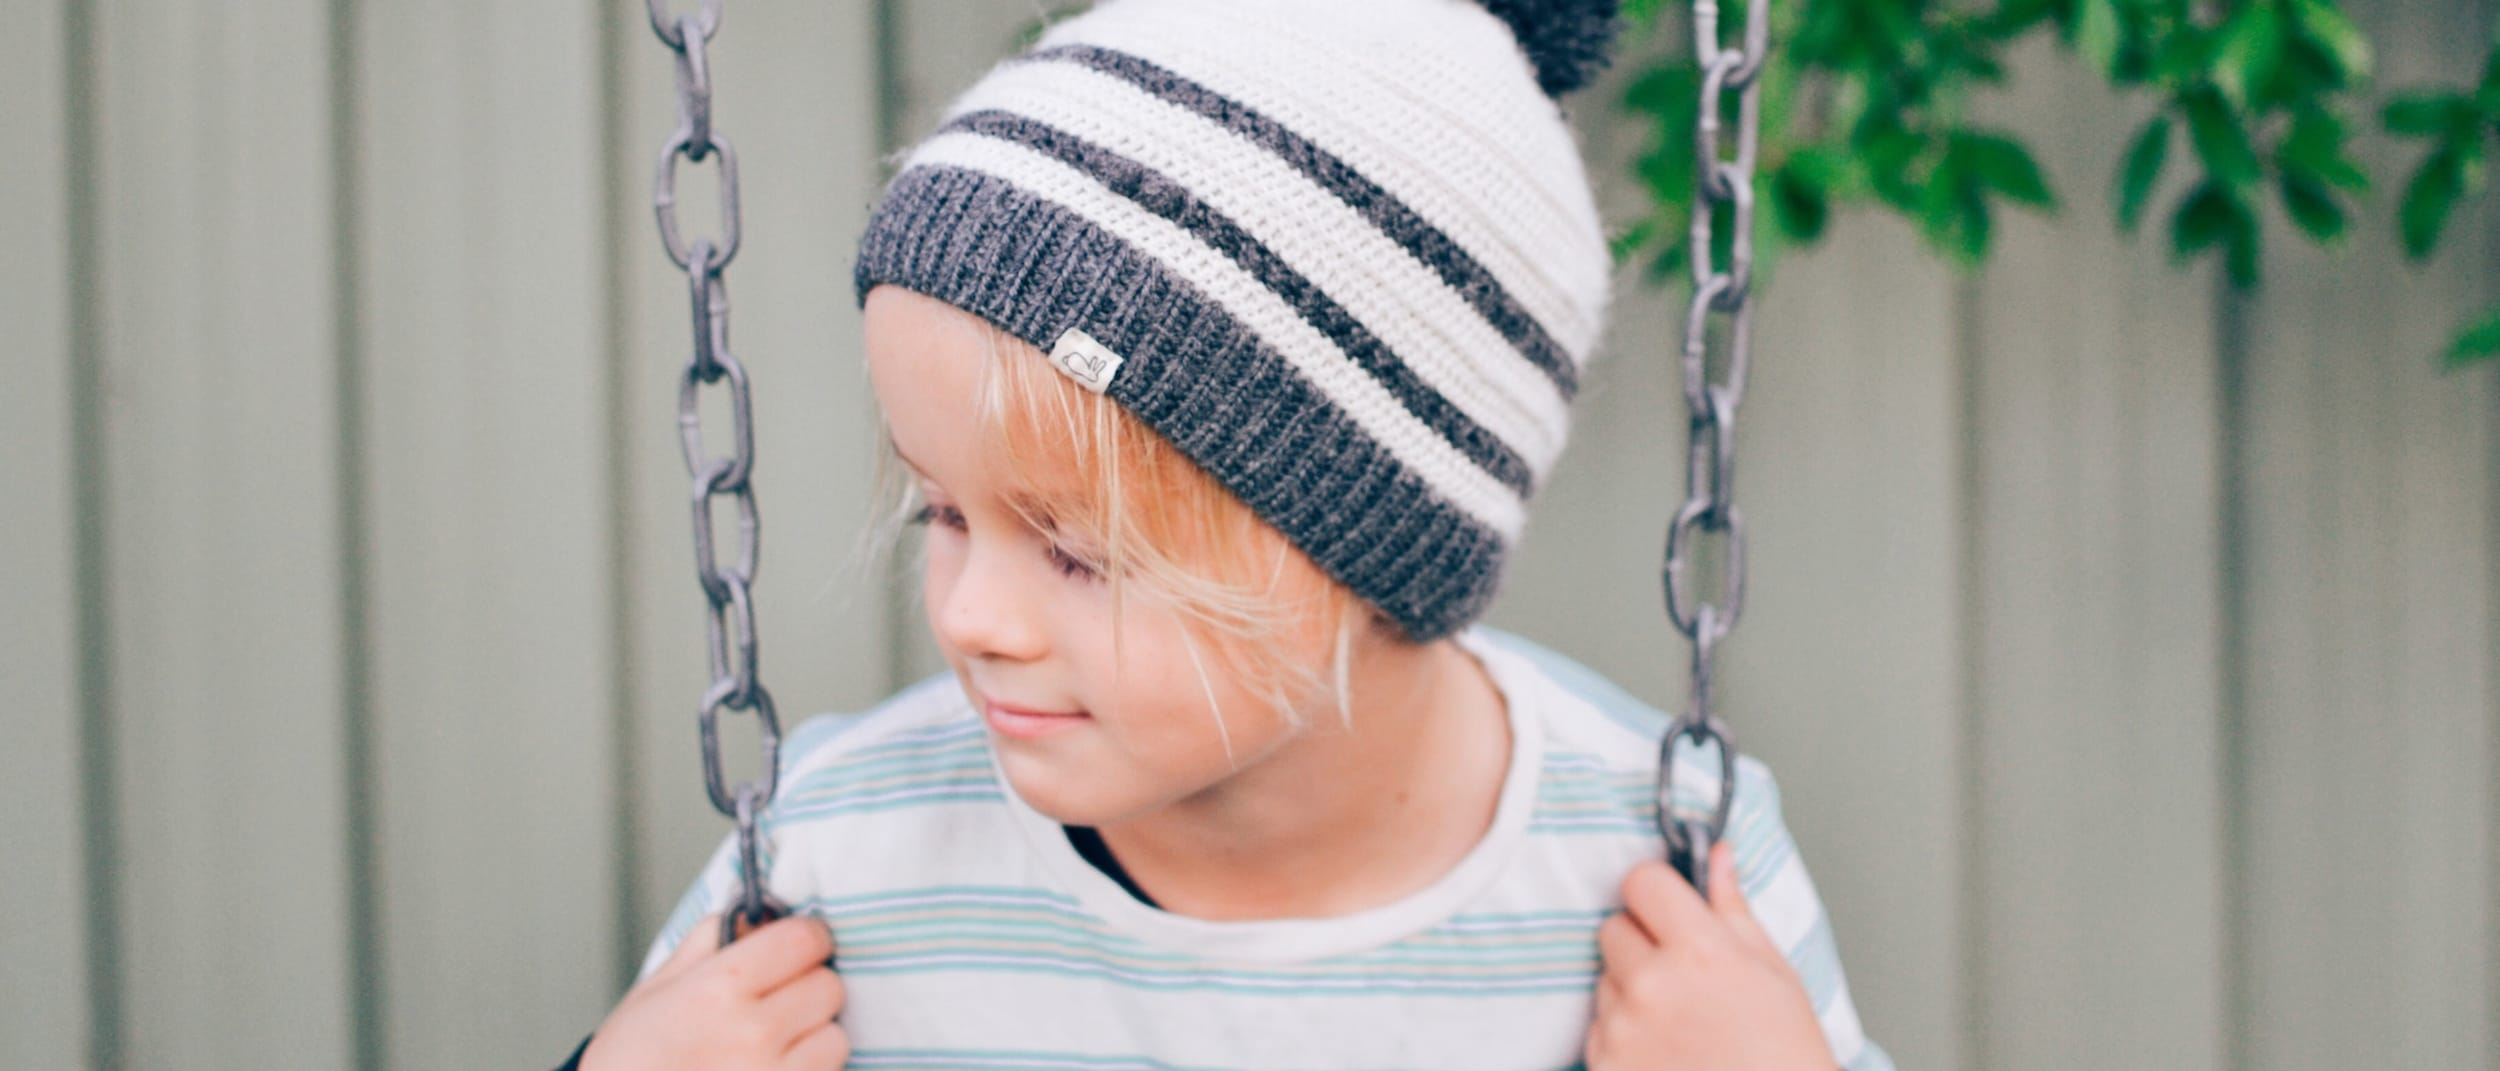 5 items to take the kids' summer wardrobe into the colder months